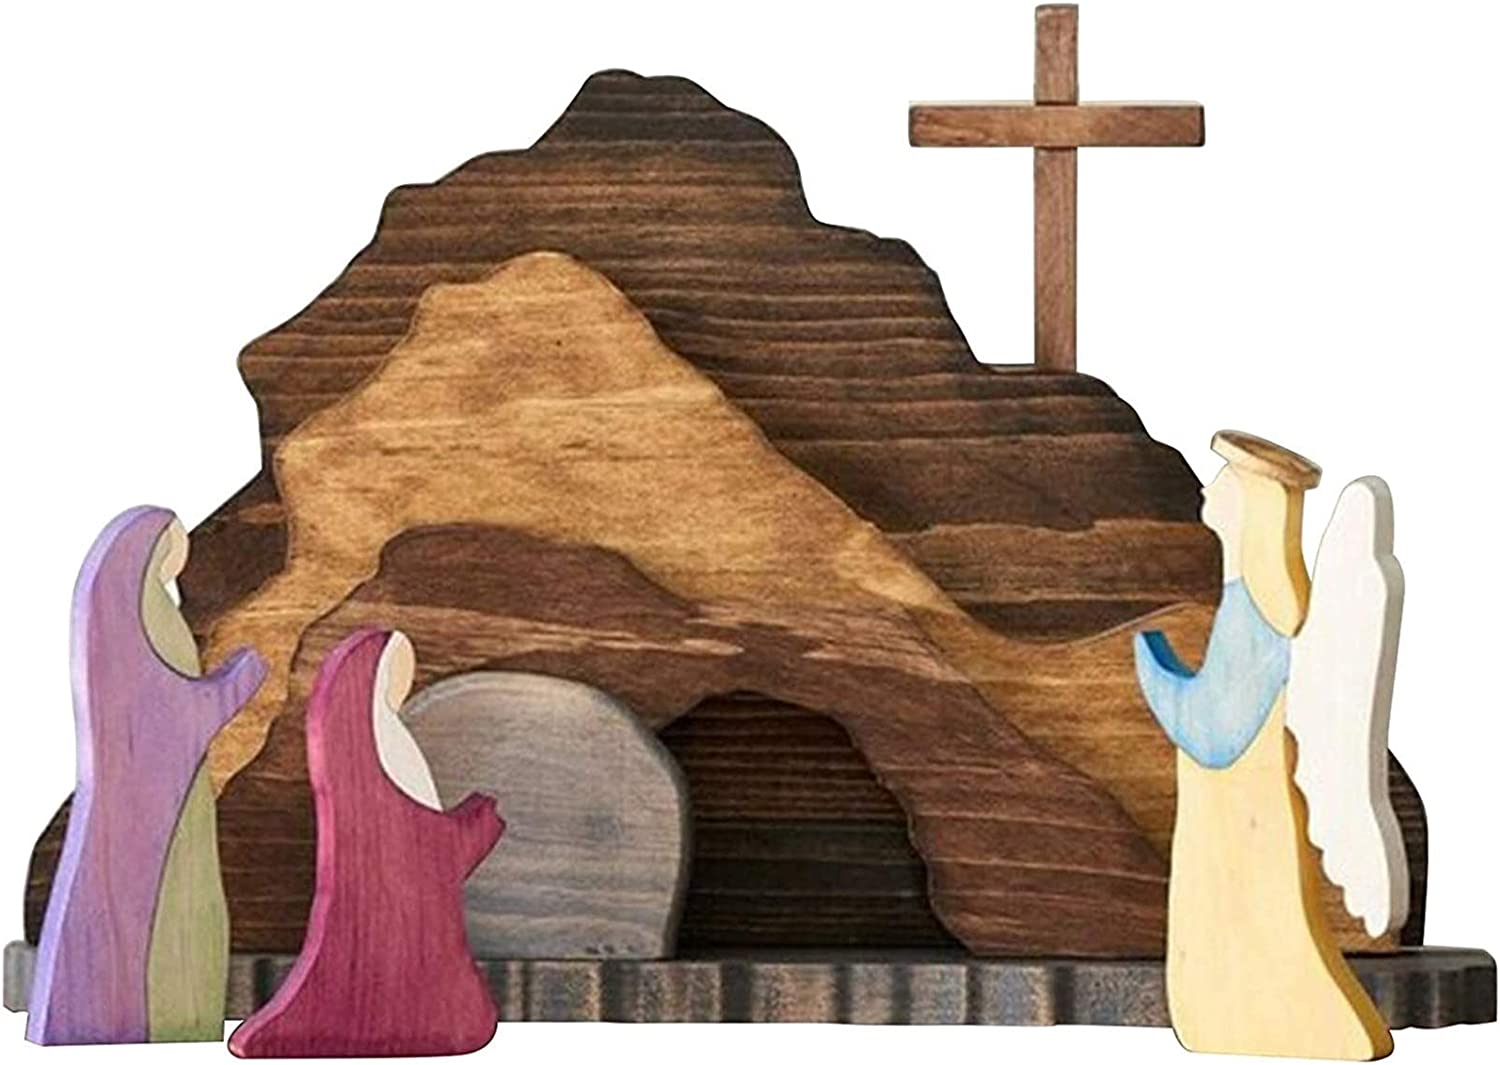 LVTIAN Easter Resurrection Scene Set - 2021new shipping free Figures San Diego Mall Sce Wooden